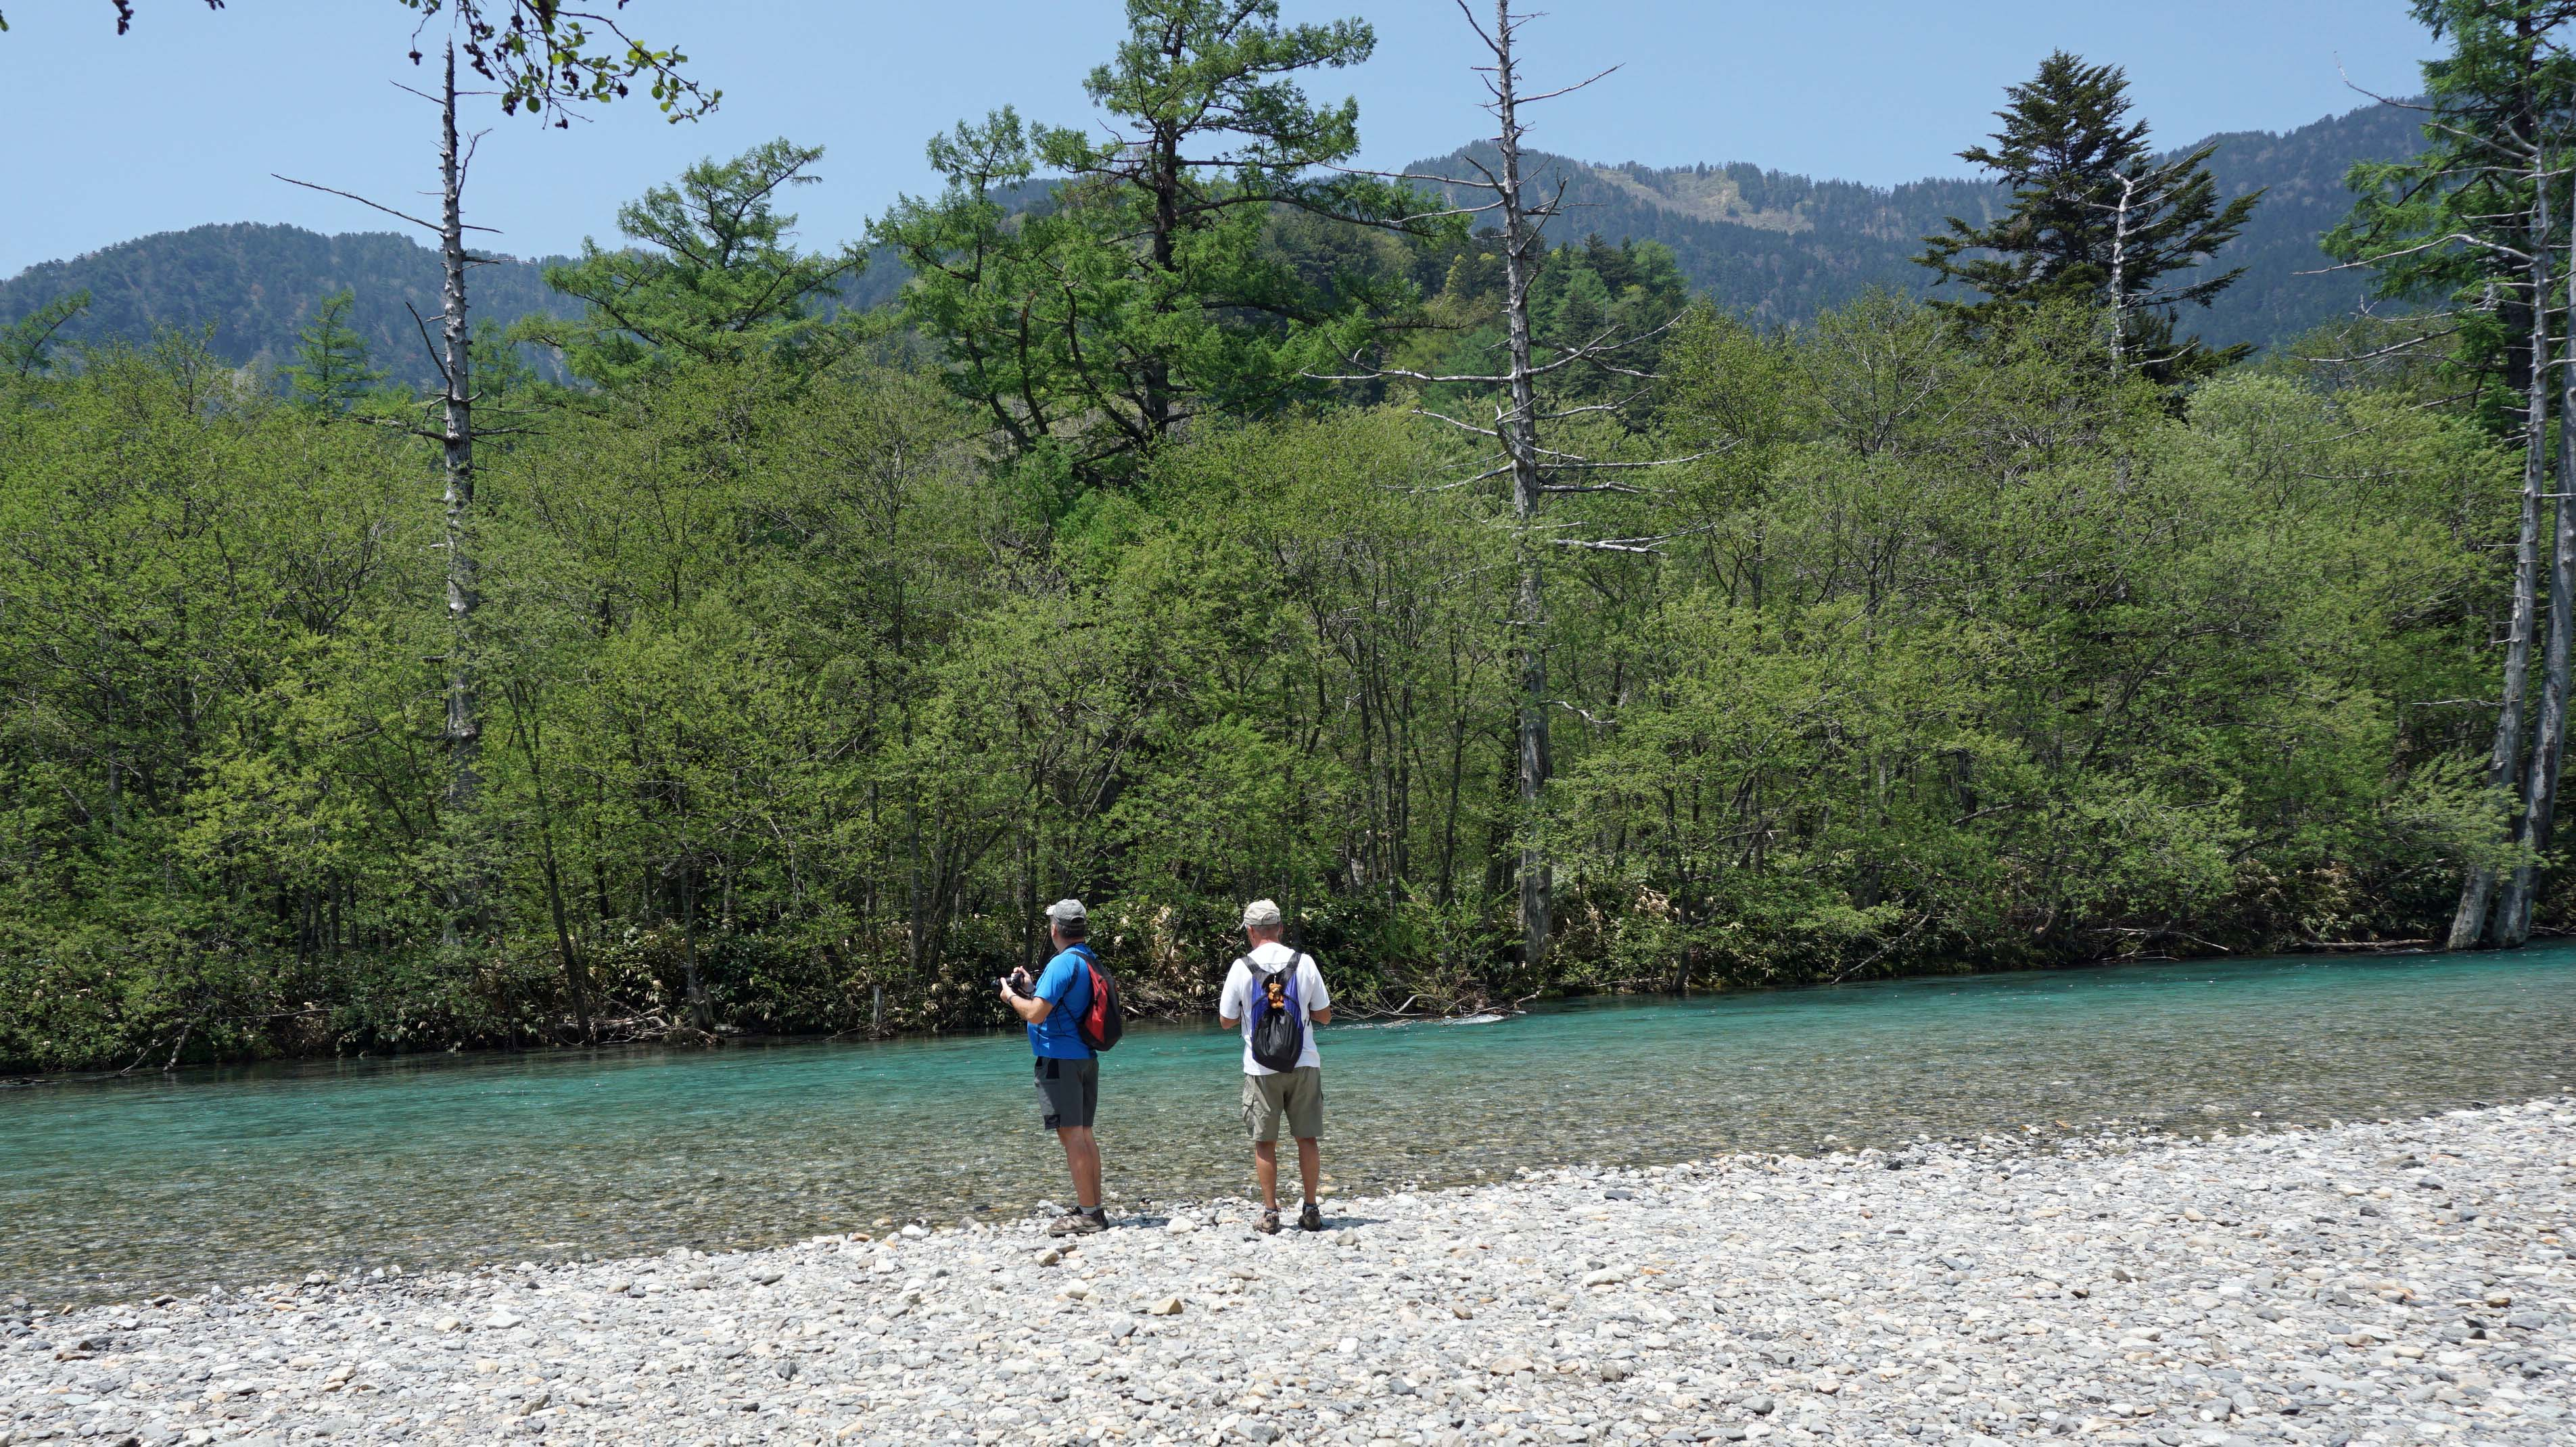 Hikers by the river